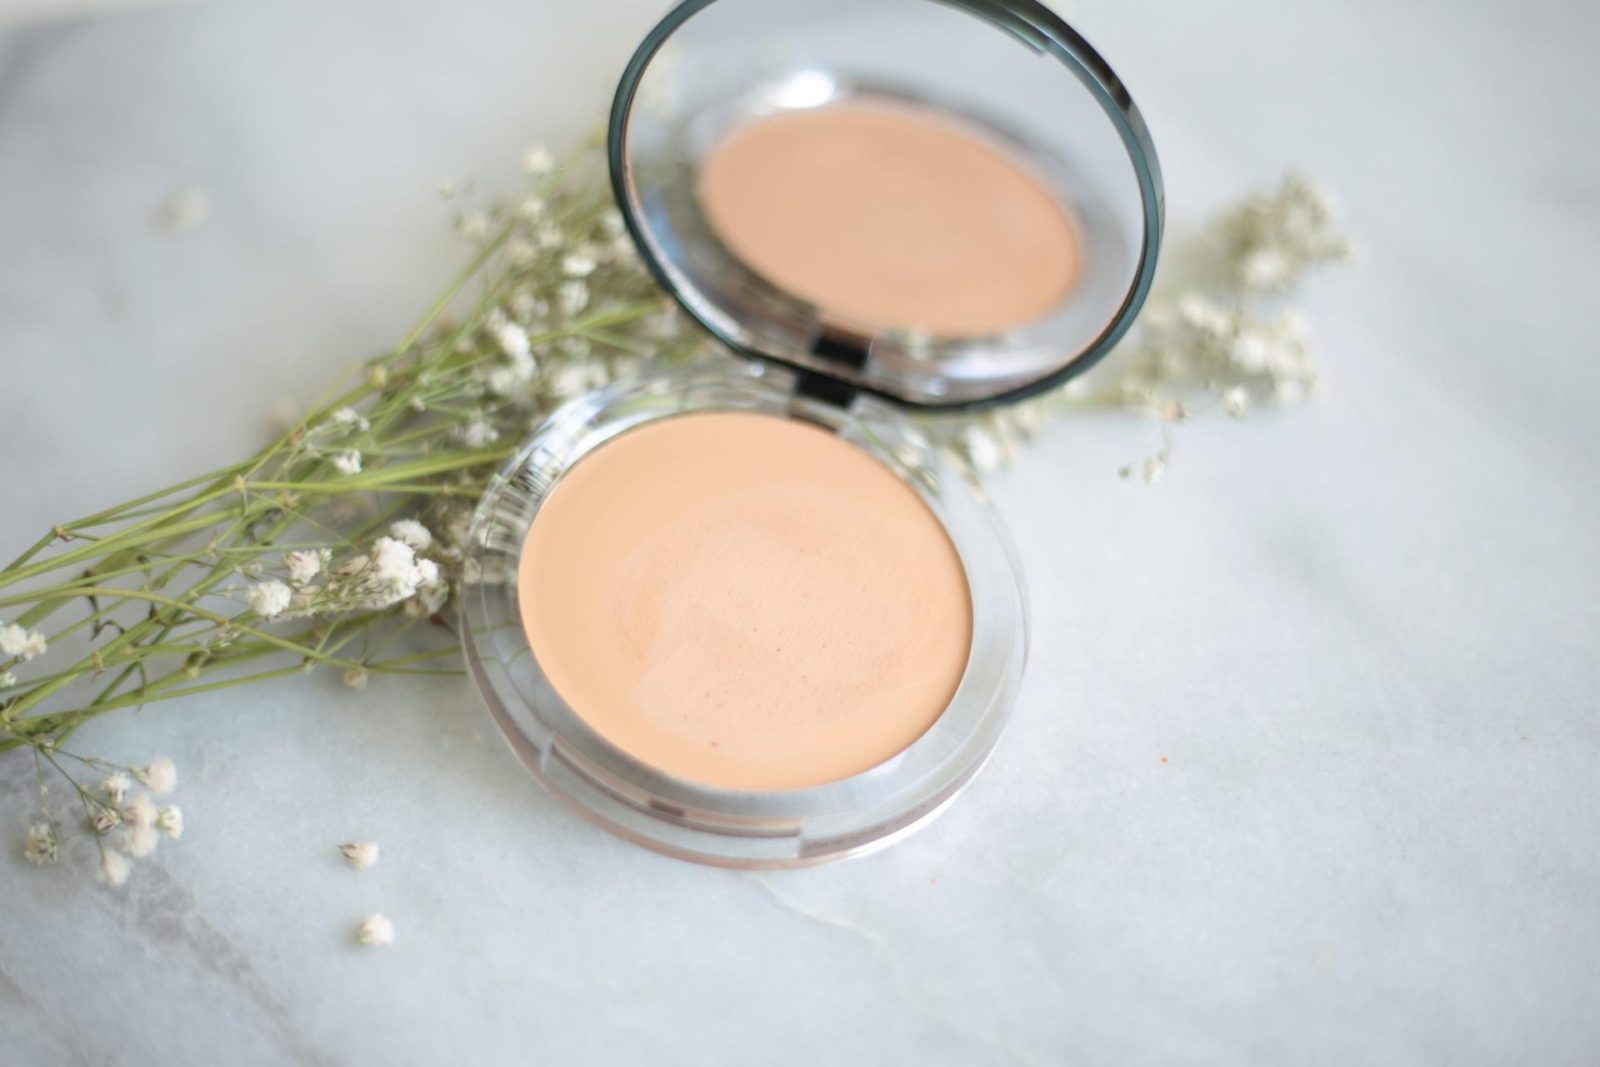 DMK cosmetics foundation minimal makeup